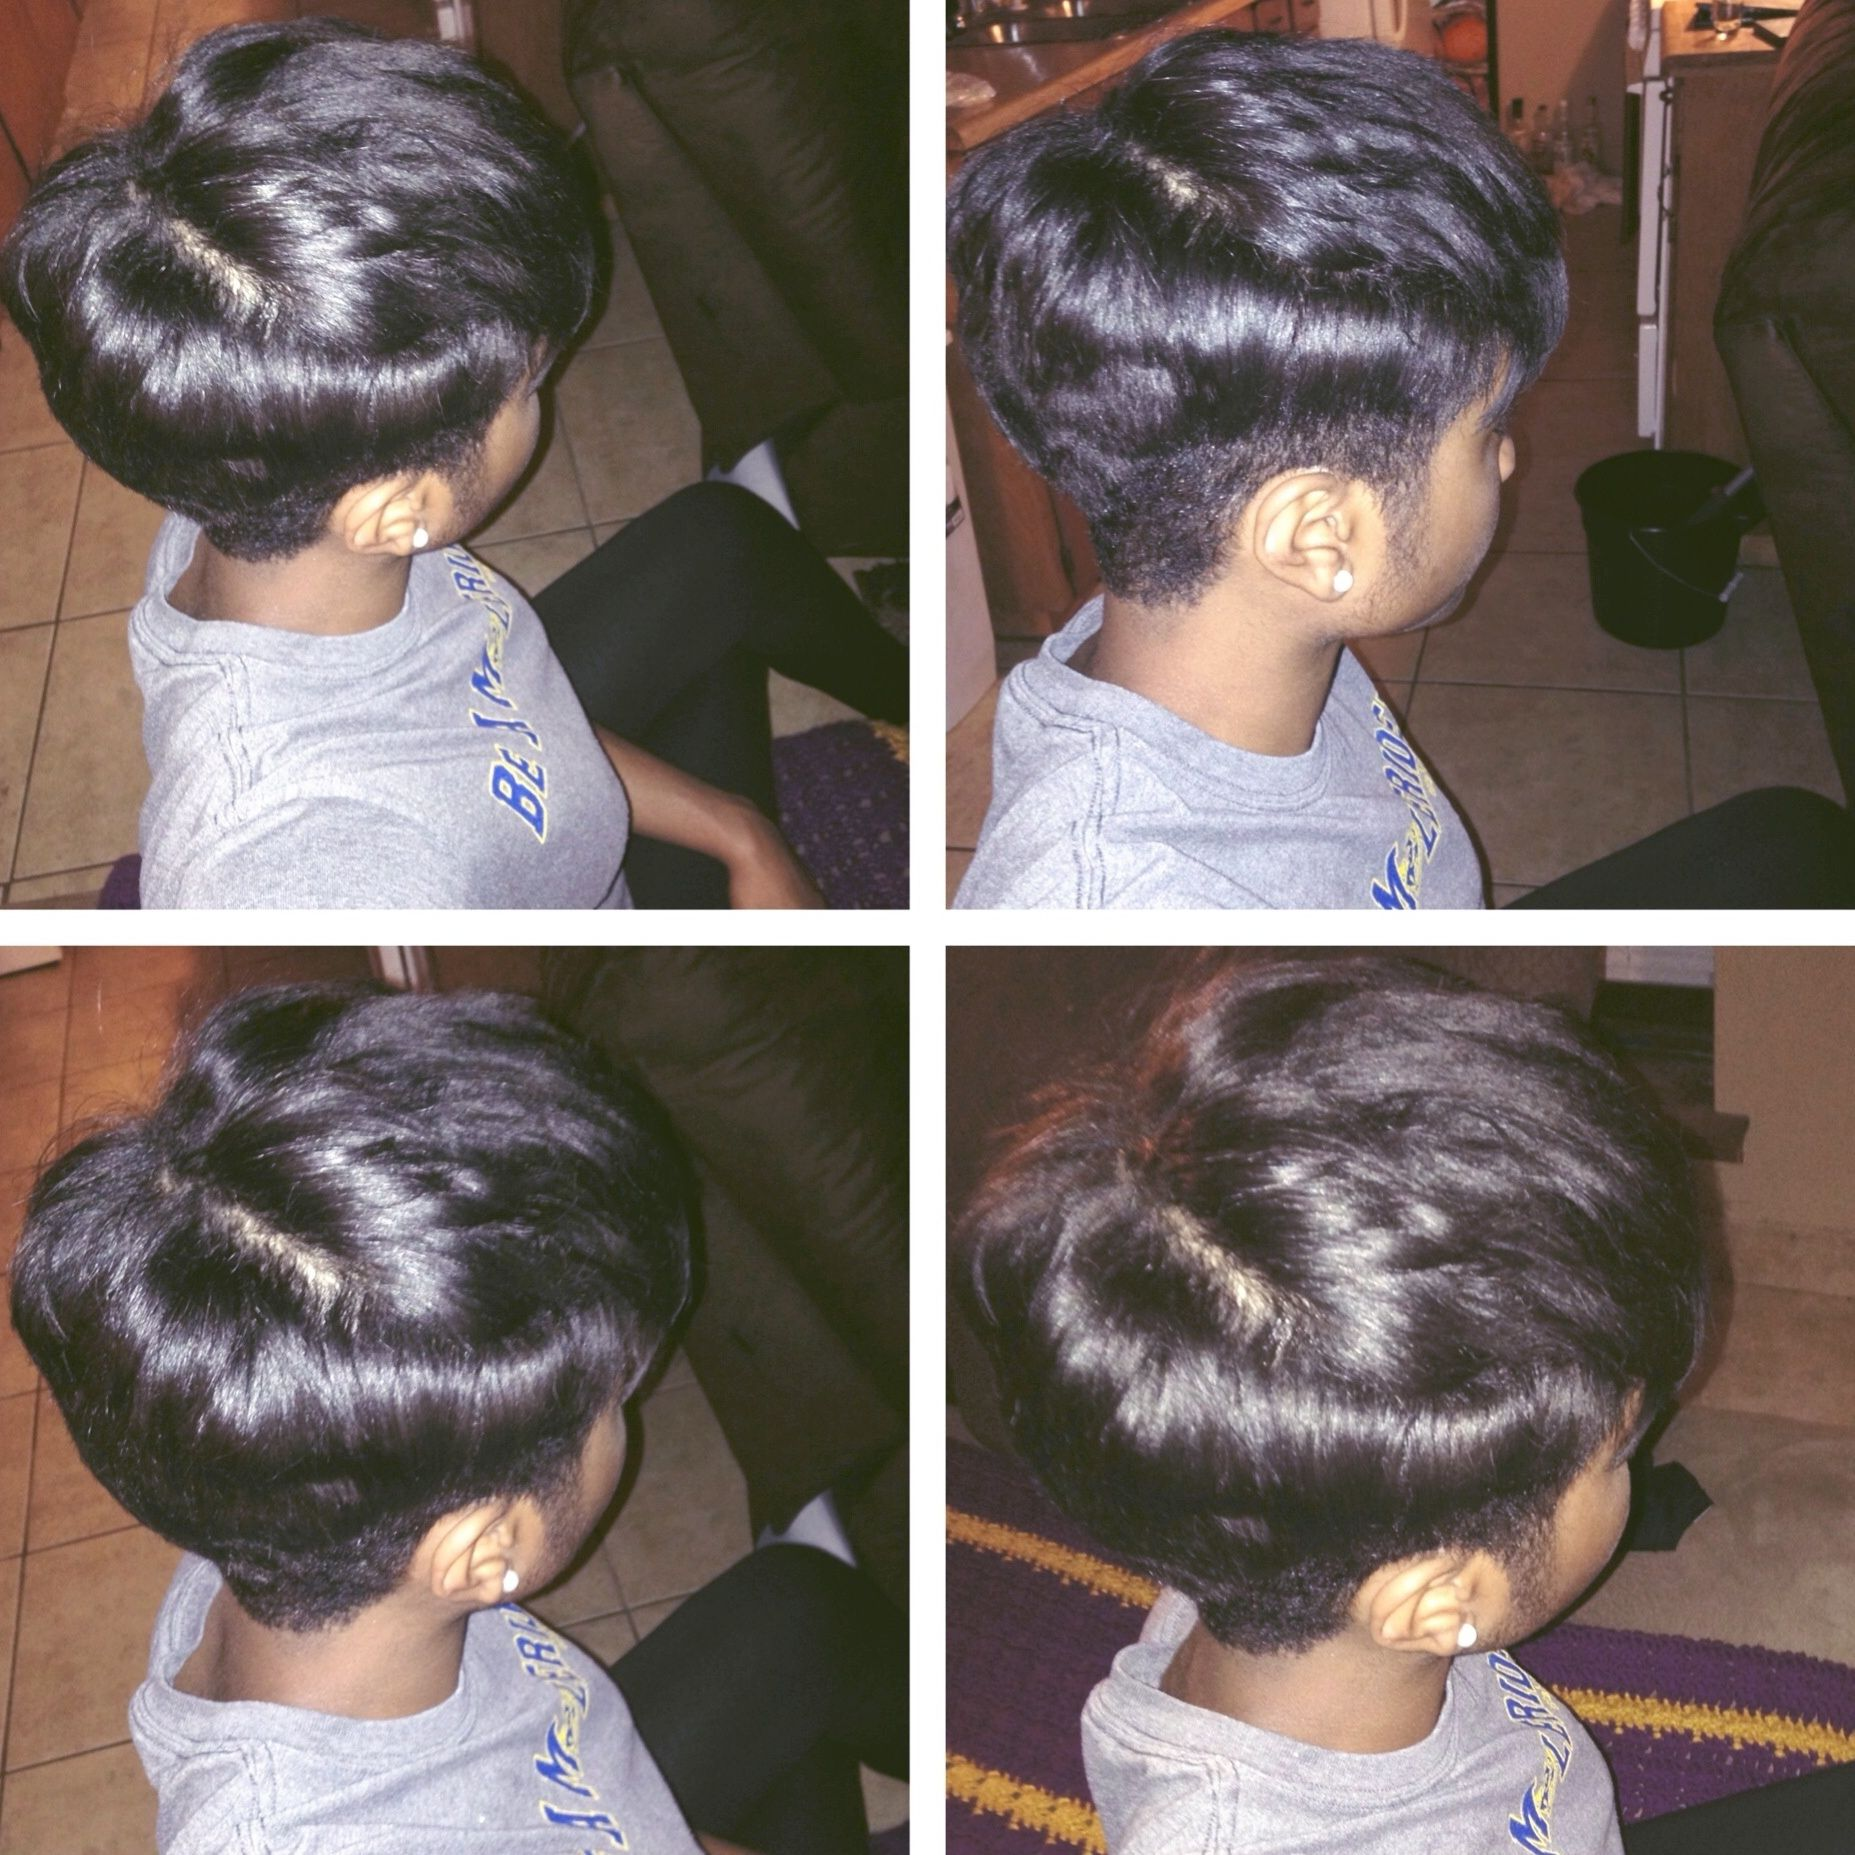 Pixie Haircut For Black Women African American Hair 2014 Black Hair Short Haircut Curled Hair Short Hairstyles Hair Styles Relaxed Hair Hair Styles 2014